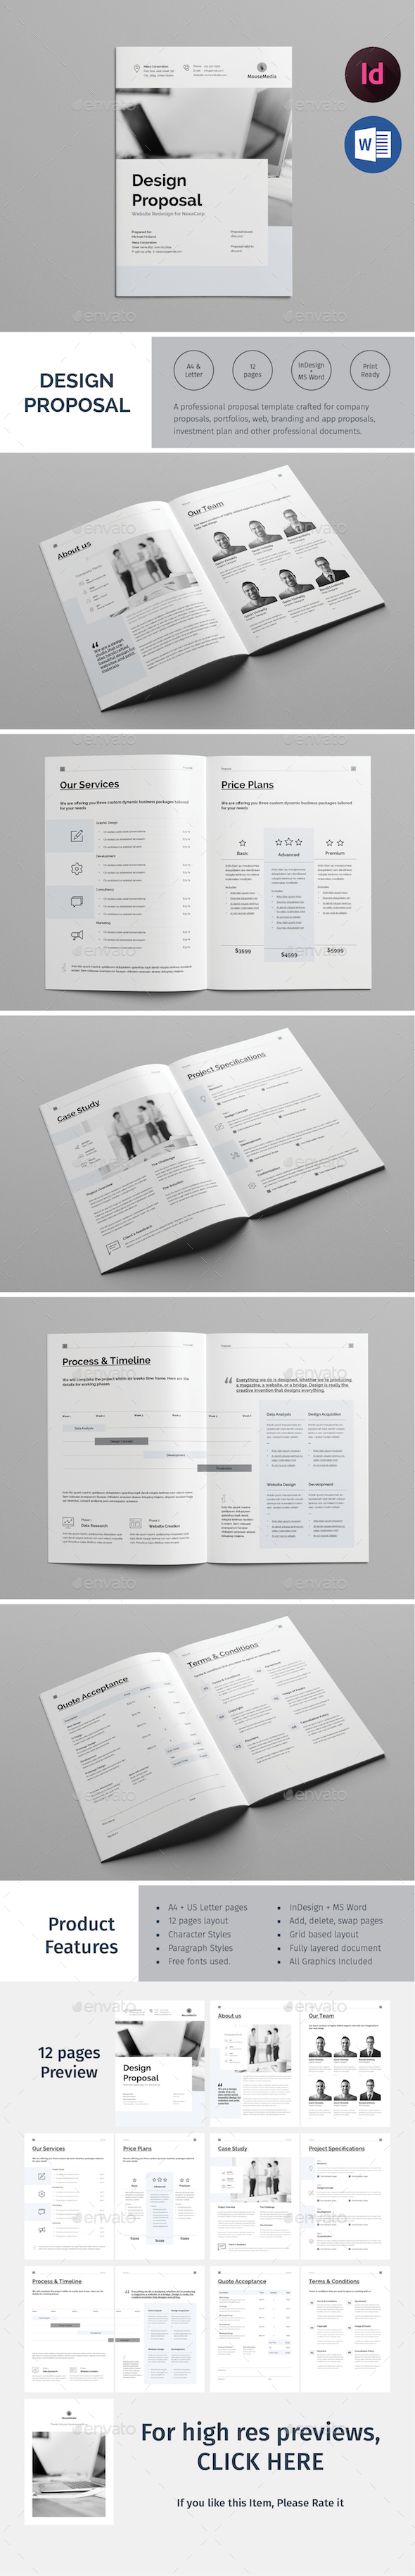 Design Proposal Template - Proposals & Invoices Stationery